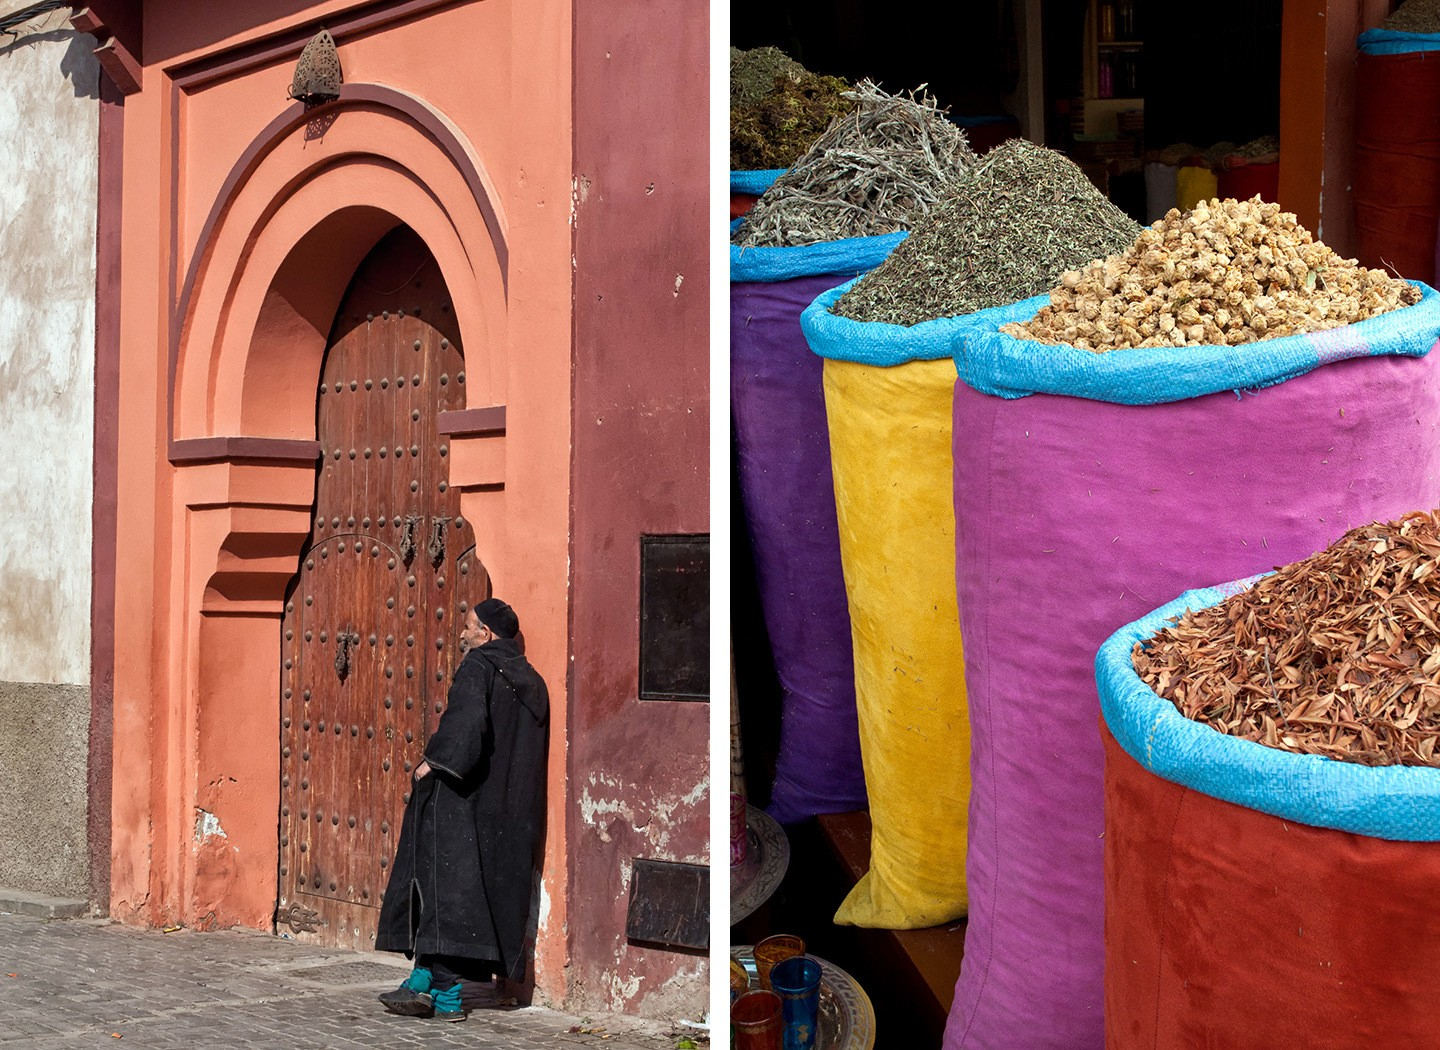 Colourful spices and doorways in the souk, Marrakech